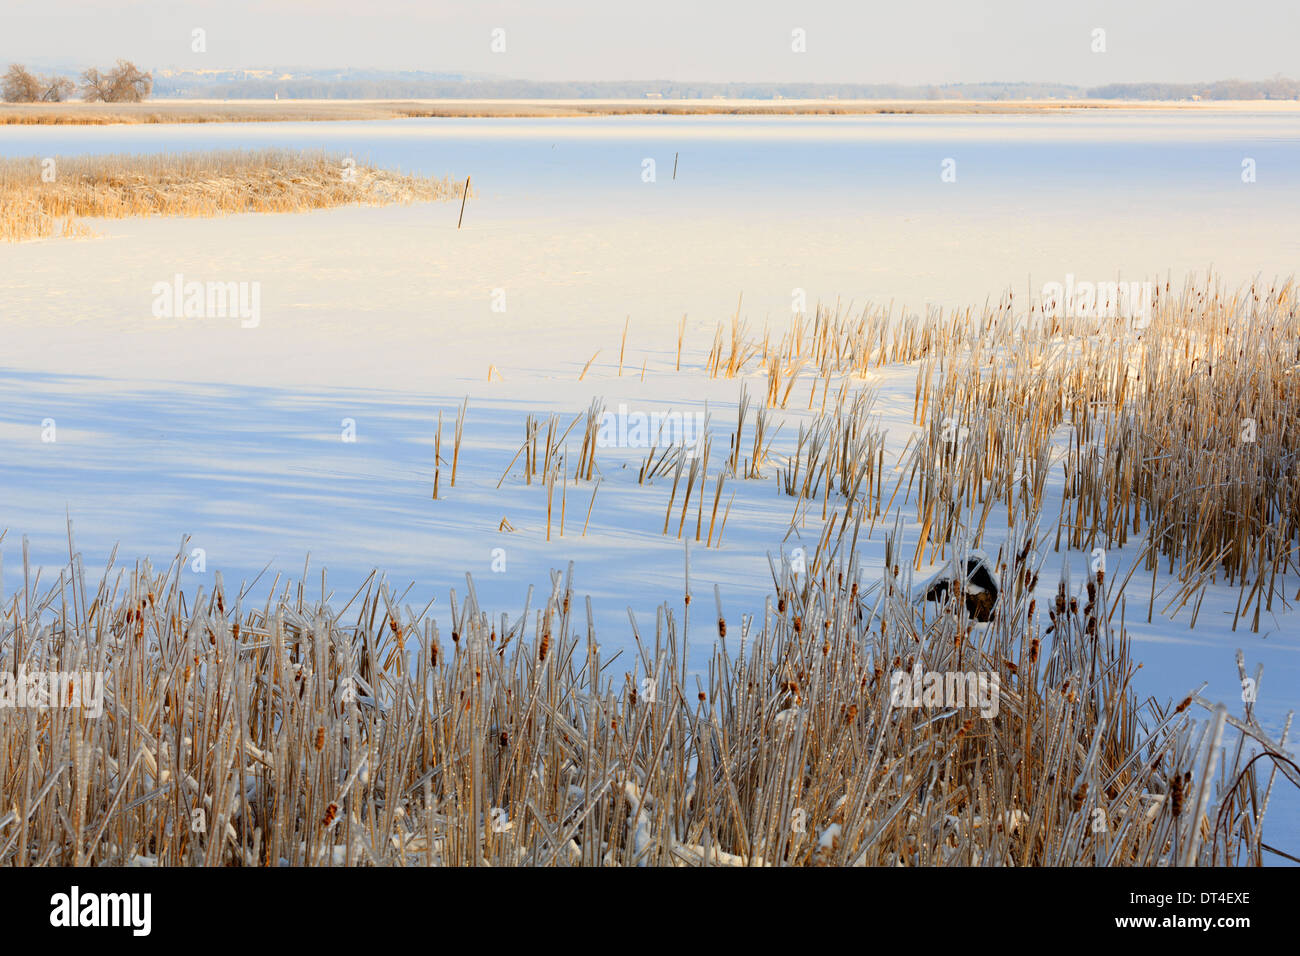 Frozen lake and ice coated bullrushes after a winter storm in Southern Ontario - Stock Image